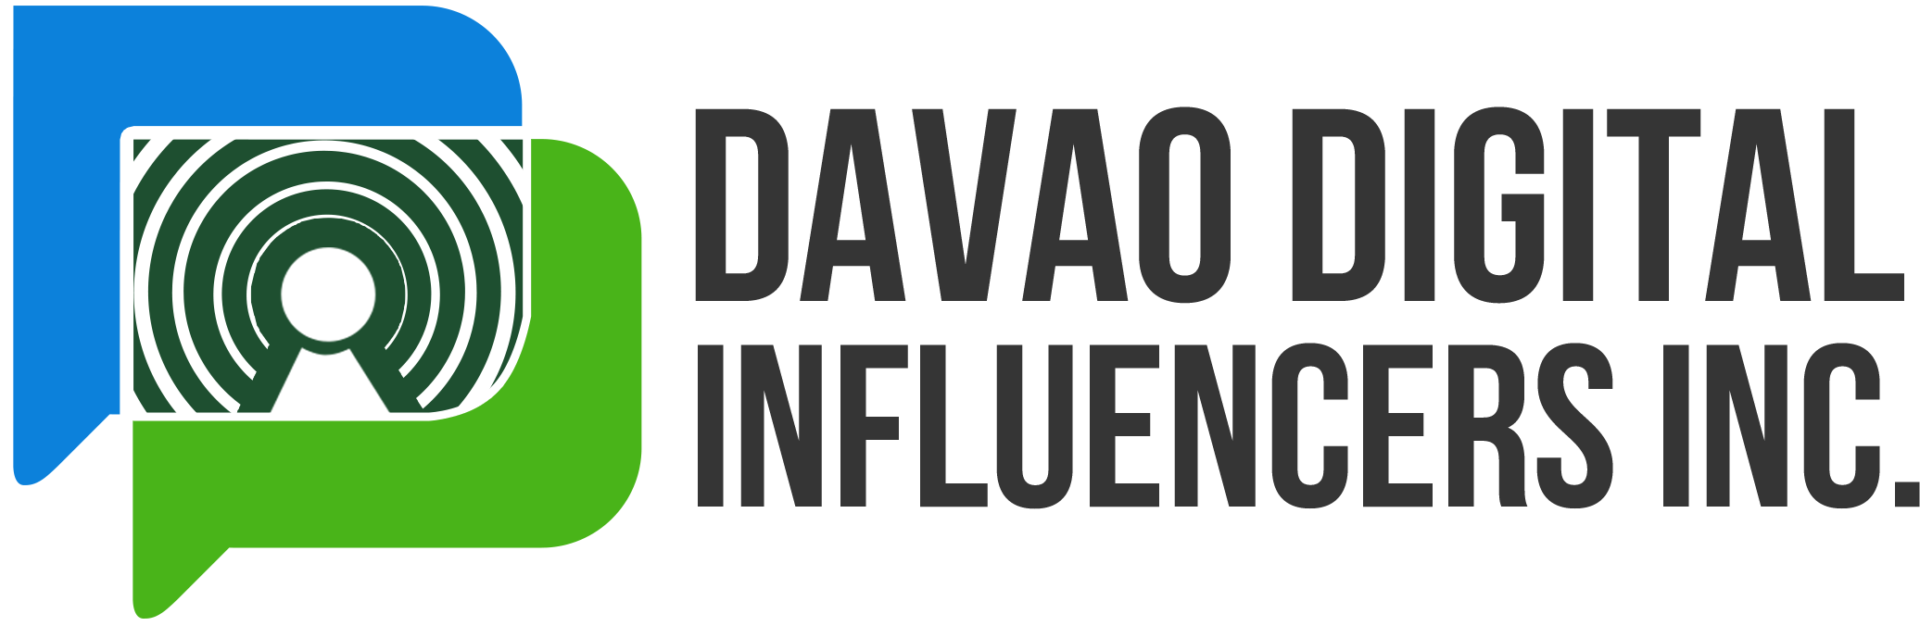 Davao Digital Influencers Inc.